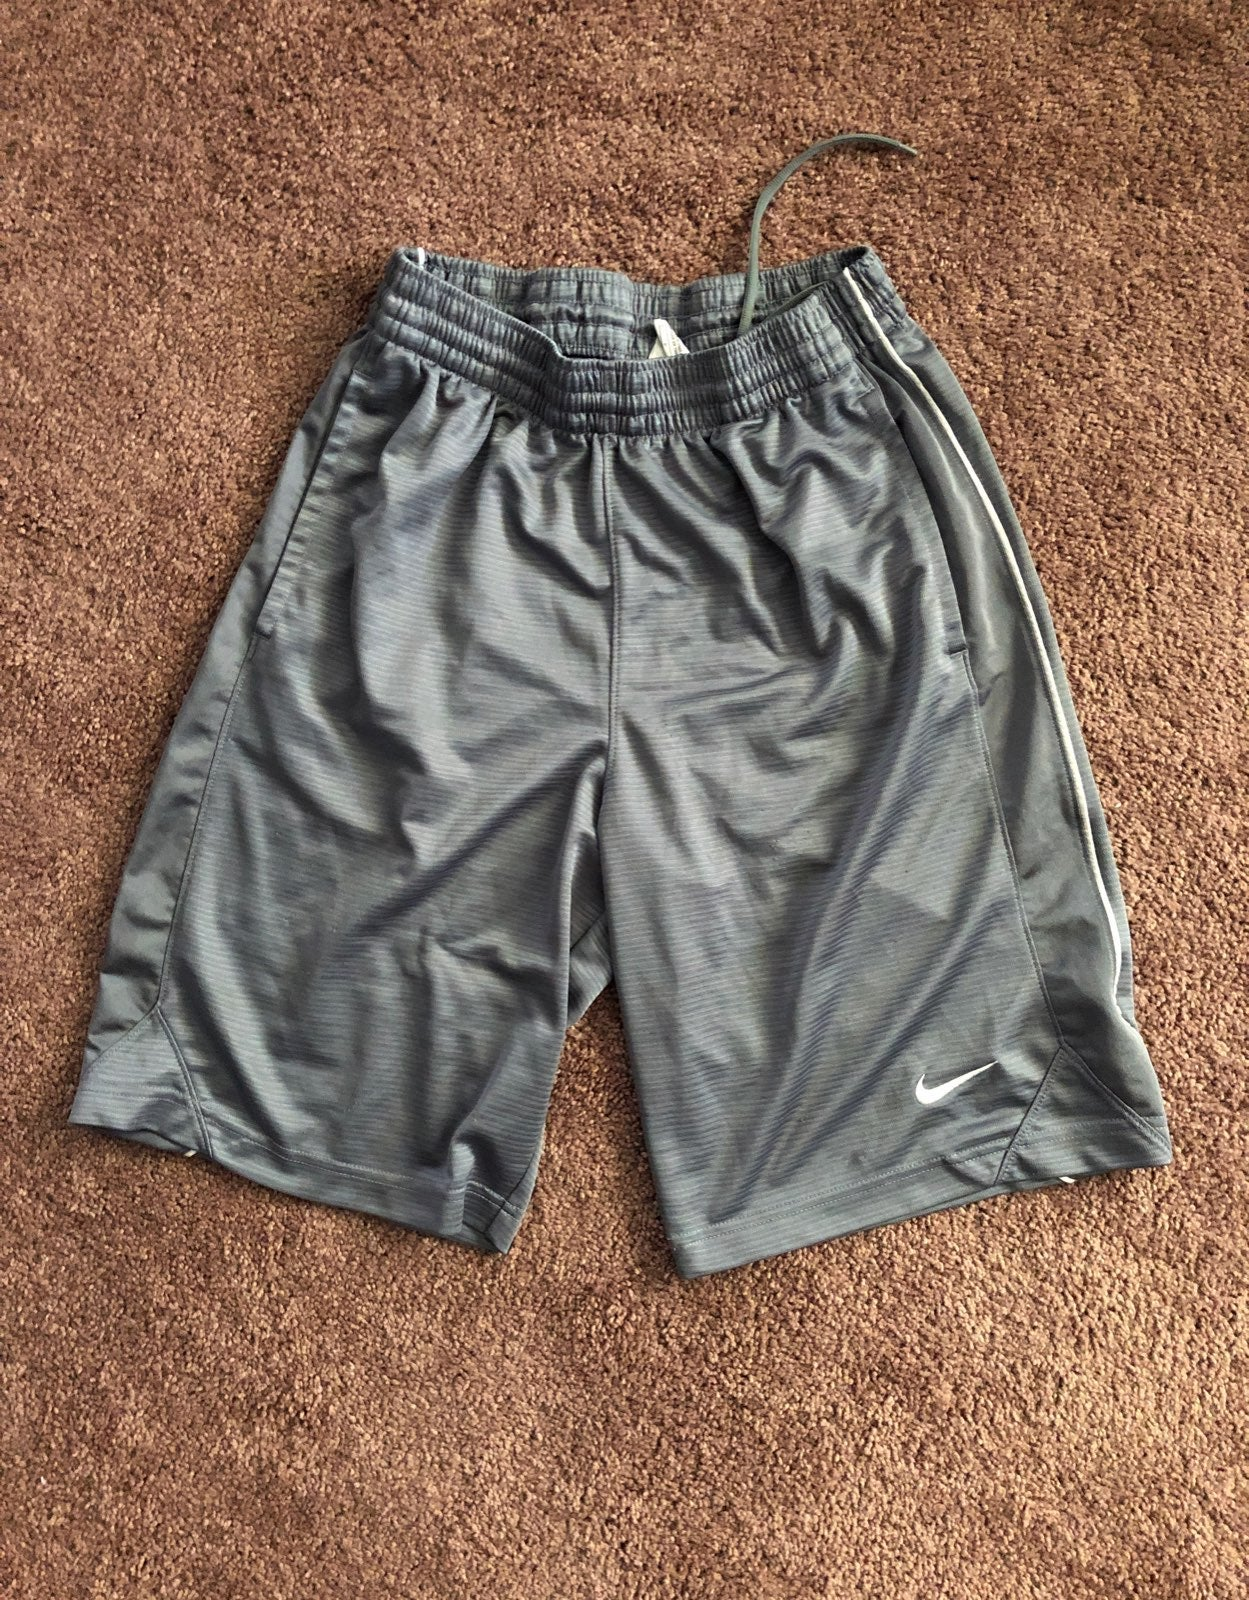 Nike Basketball Shorts, Size Small